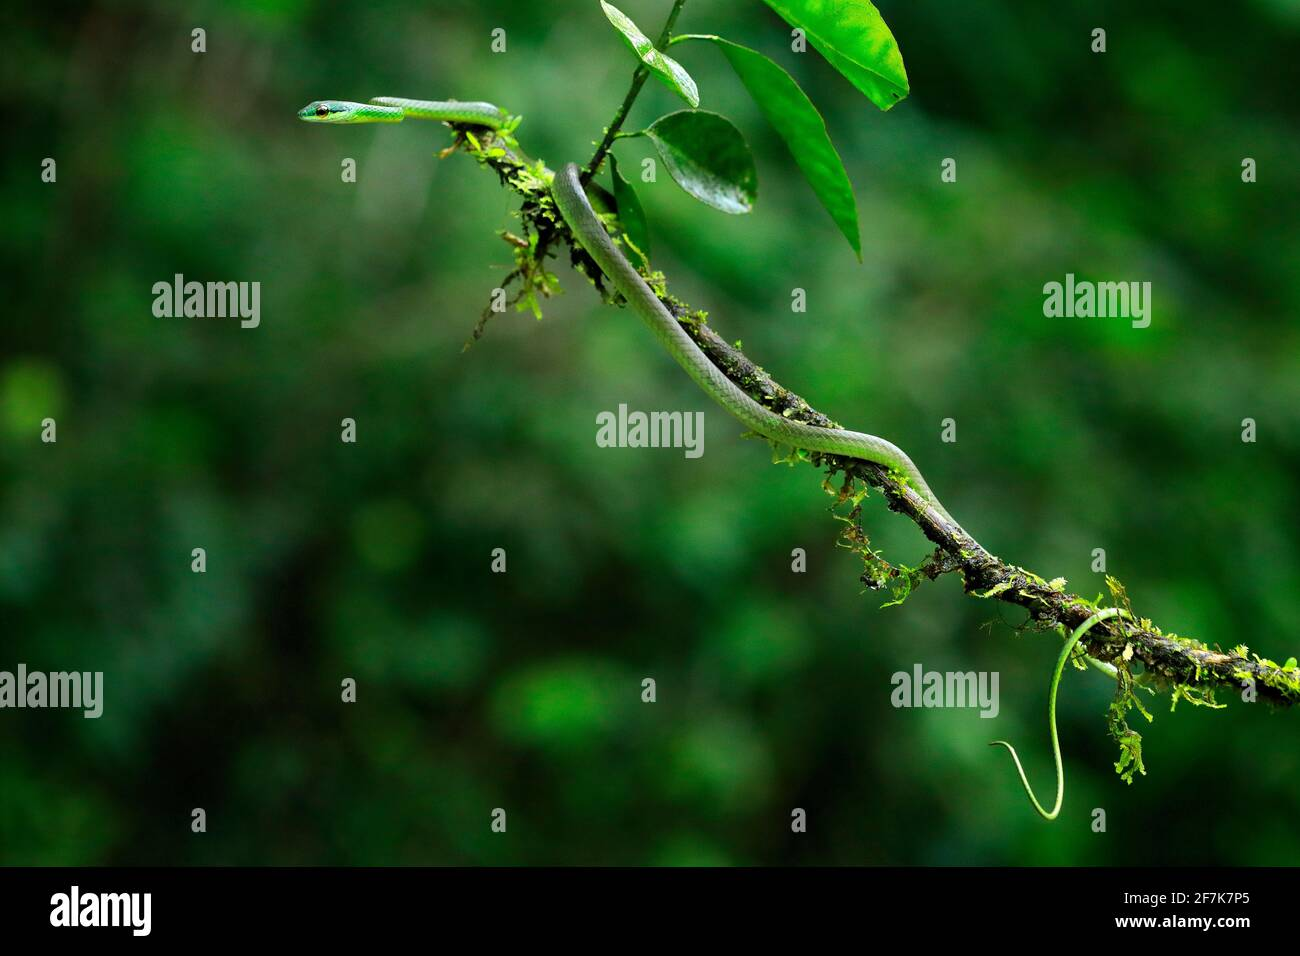 Oxybelis brevirostris, Cope's short-nosed Vine Snake, red snake in the green vegetation. Forest reptile in habitat, on the tree branch, Costa Rica. Wi Stock Photo